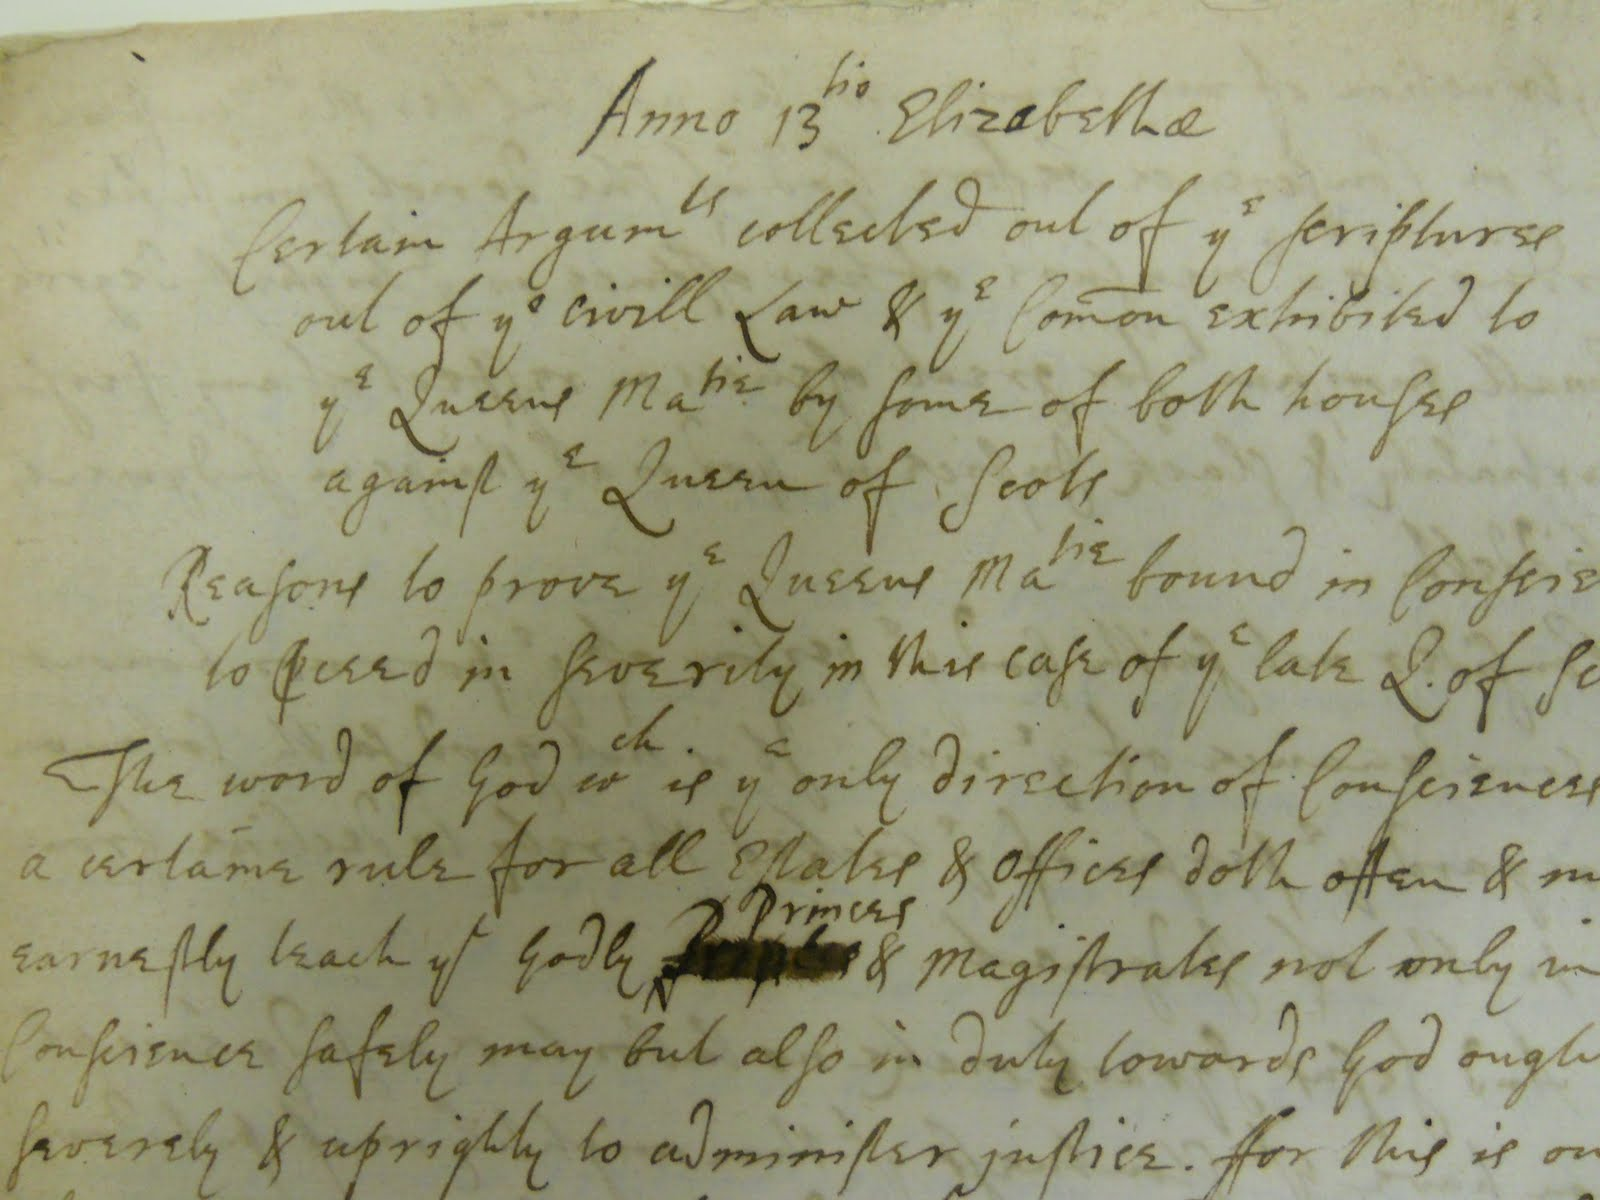 isaac newton essay isaac newton essay best ideas about isaac  brandeis special collections spotlight isaac newton manuscript